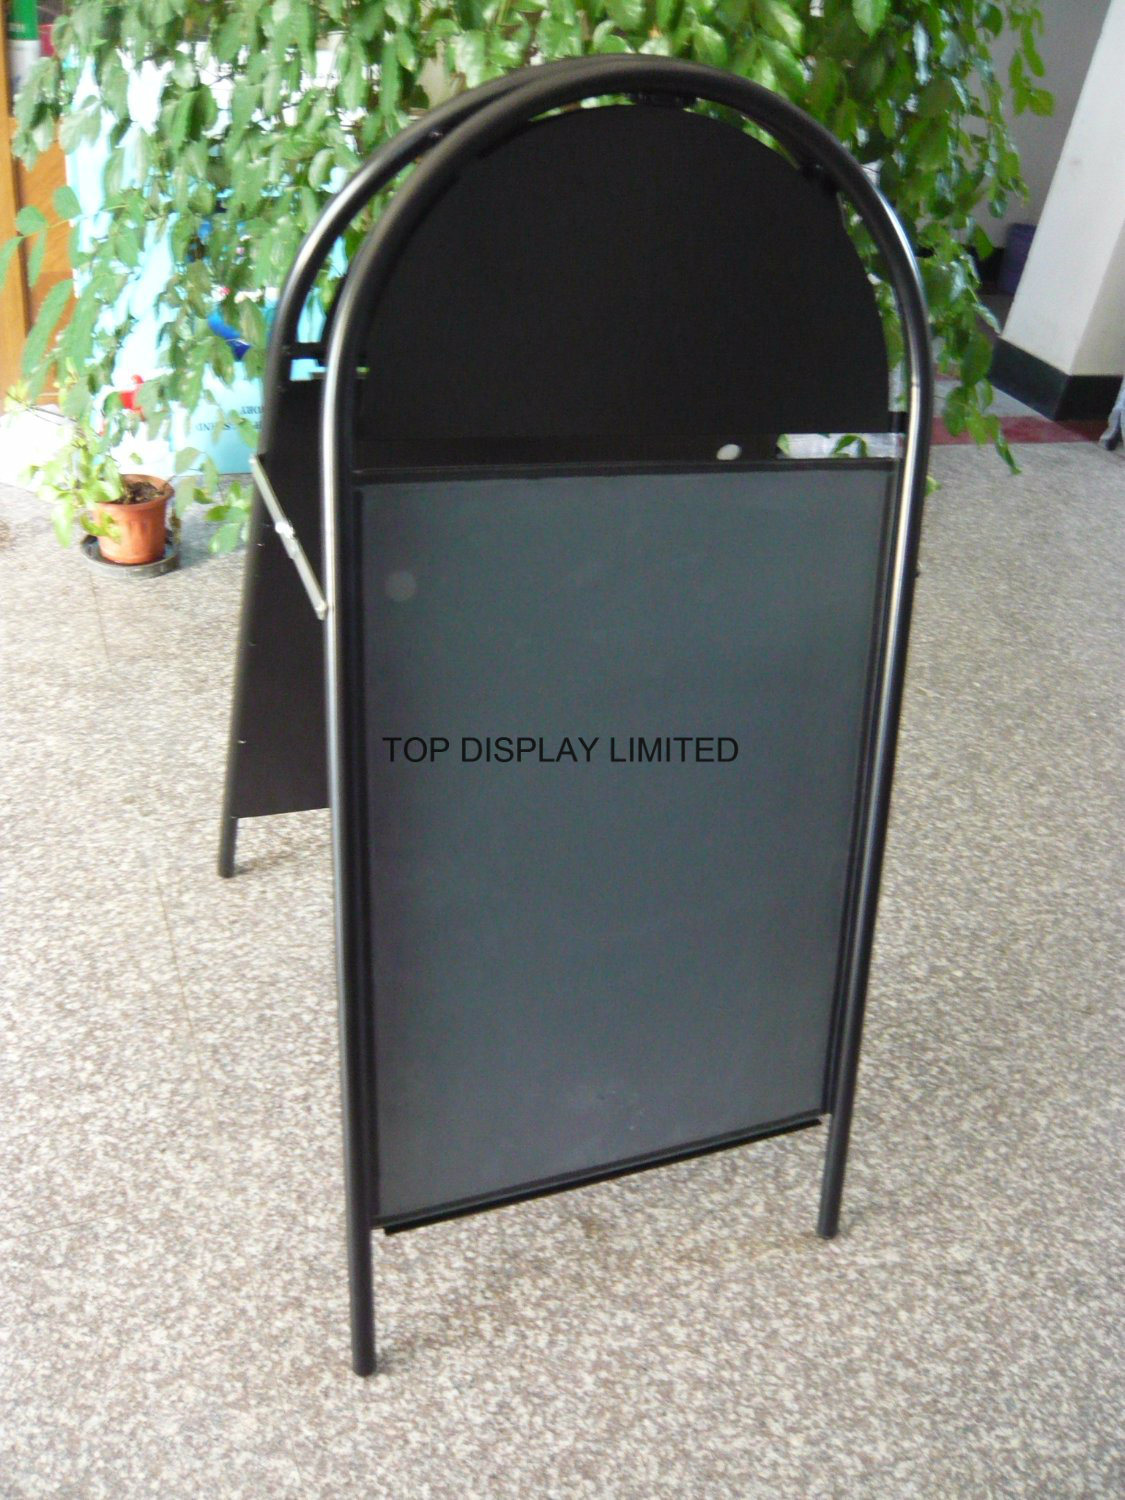 Round Metal a Frame Signs/Traffic Sign, Advertising Display, Outdoor Sign, Display, Sign Board, Billboard, , Display, Advertising, Banner